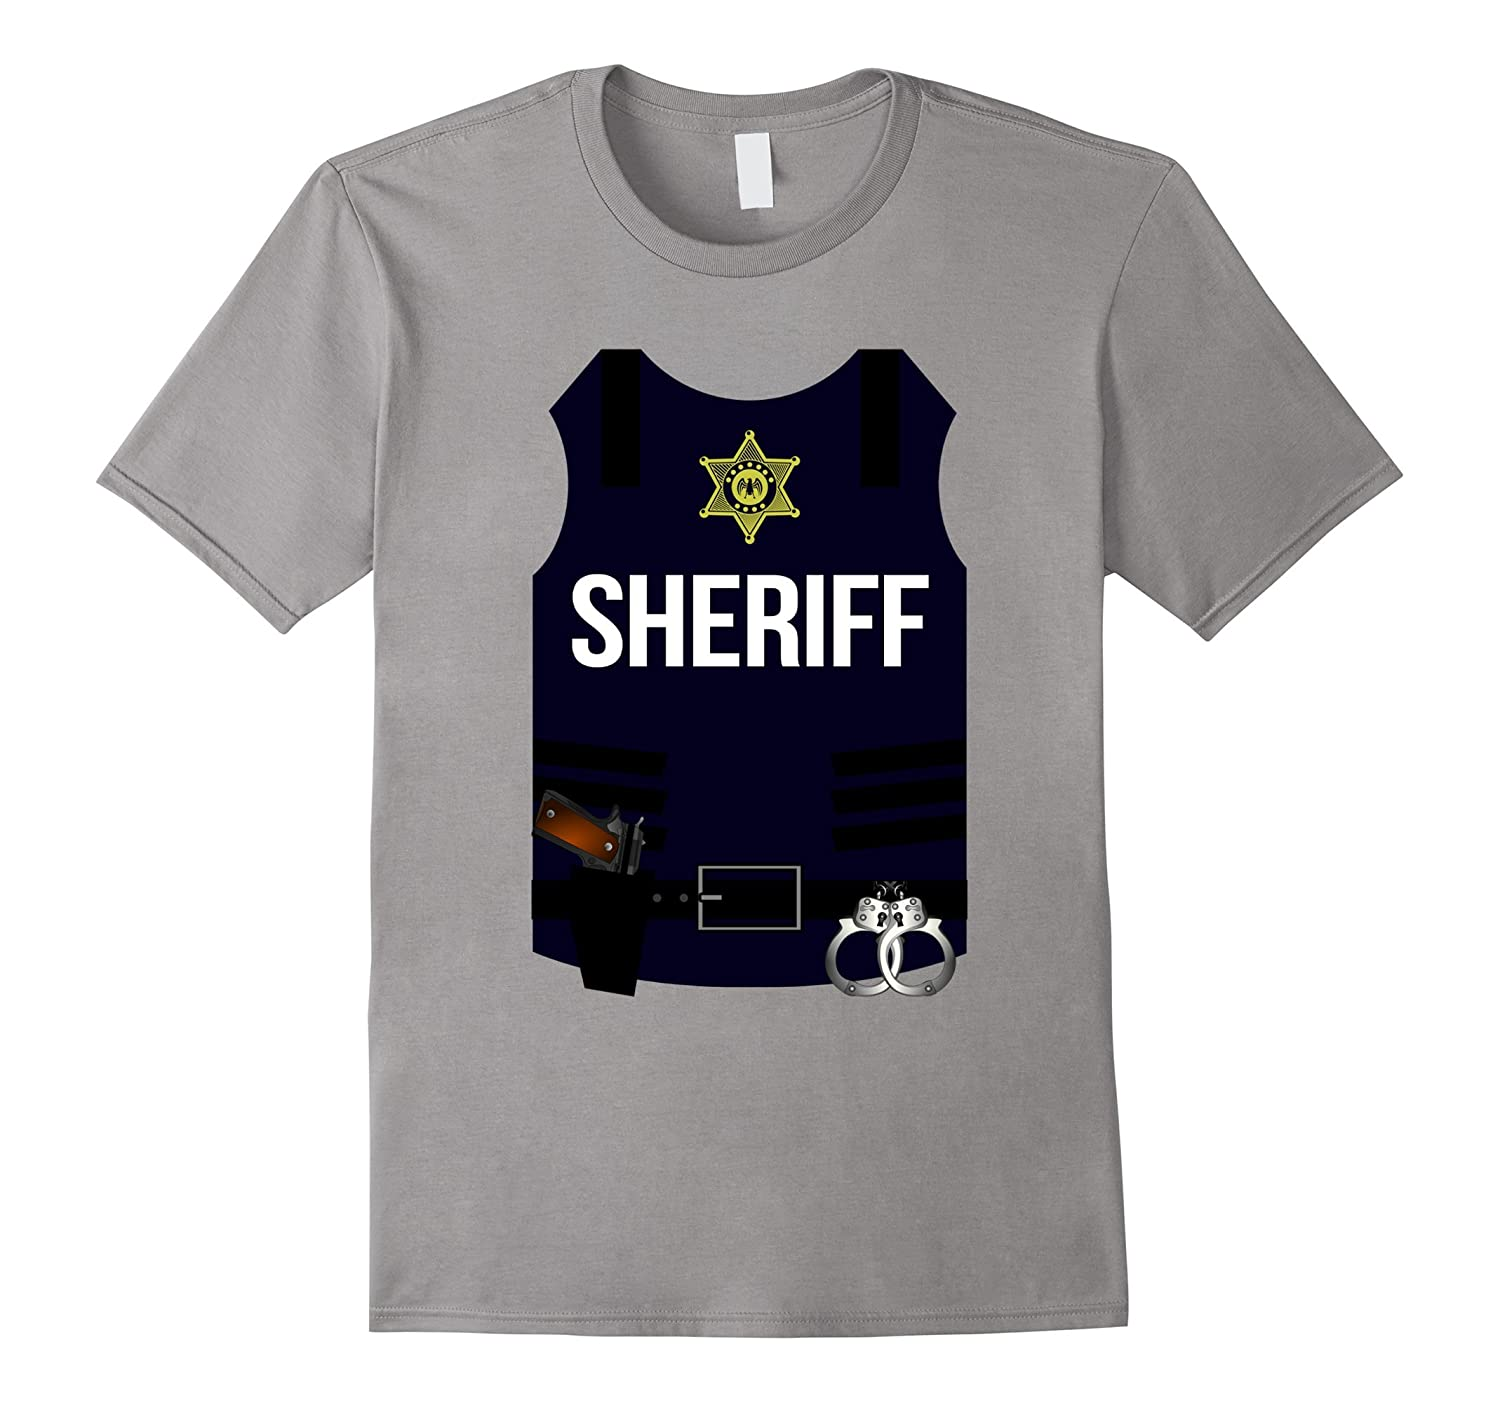 Sheriff Vest Halloween Costume Shirt - Cops Men Women Youth